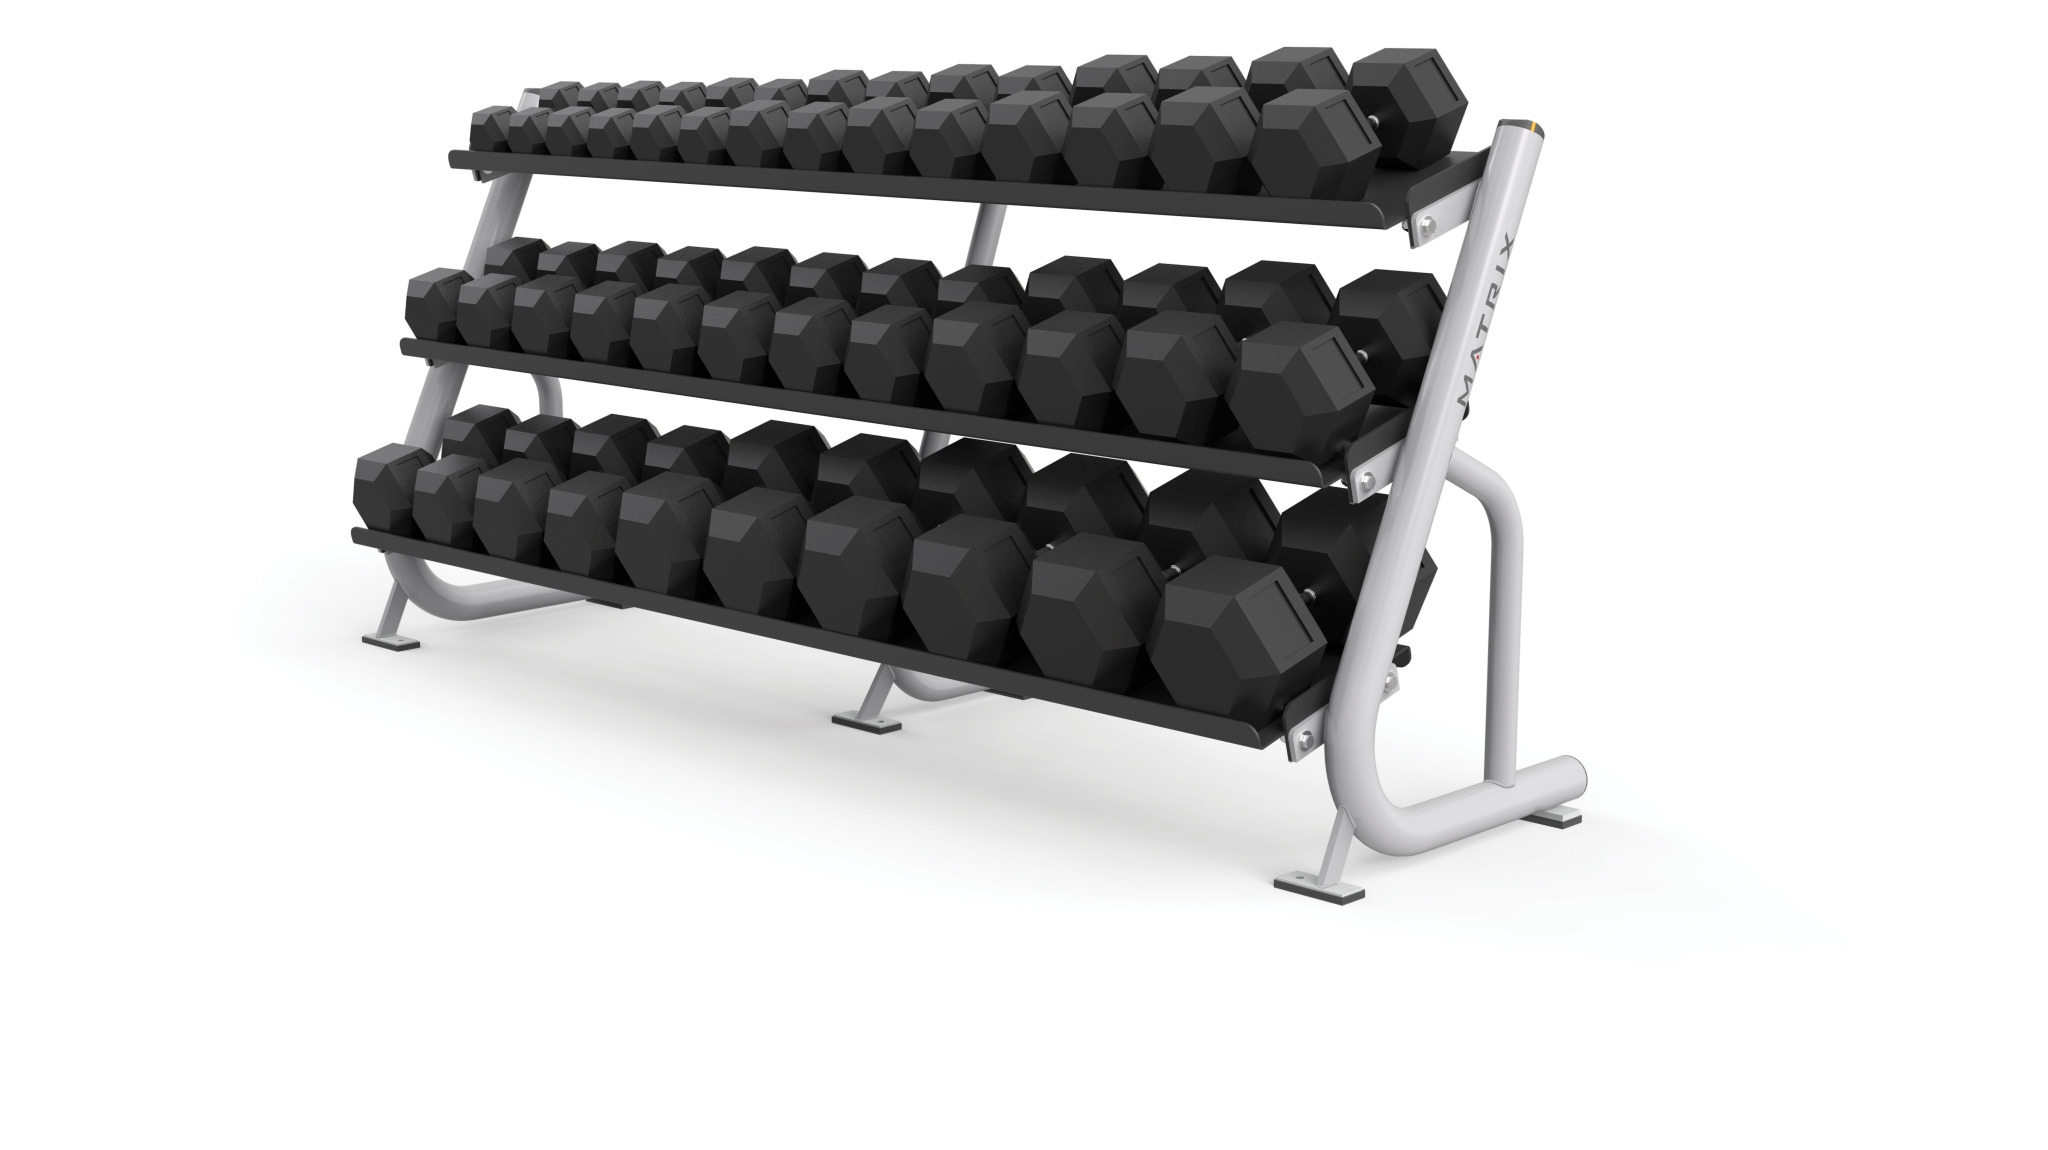 3-tier Flat-tray Dumbbell Rack